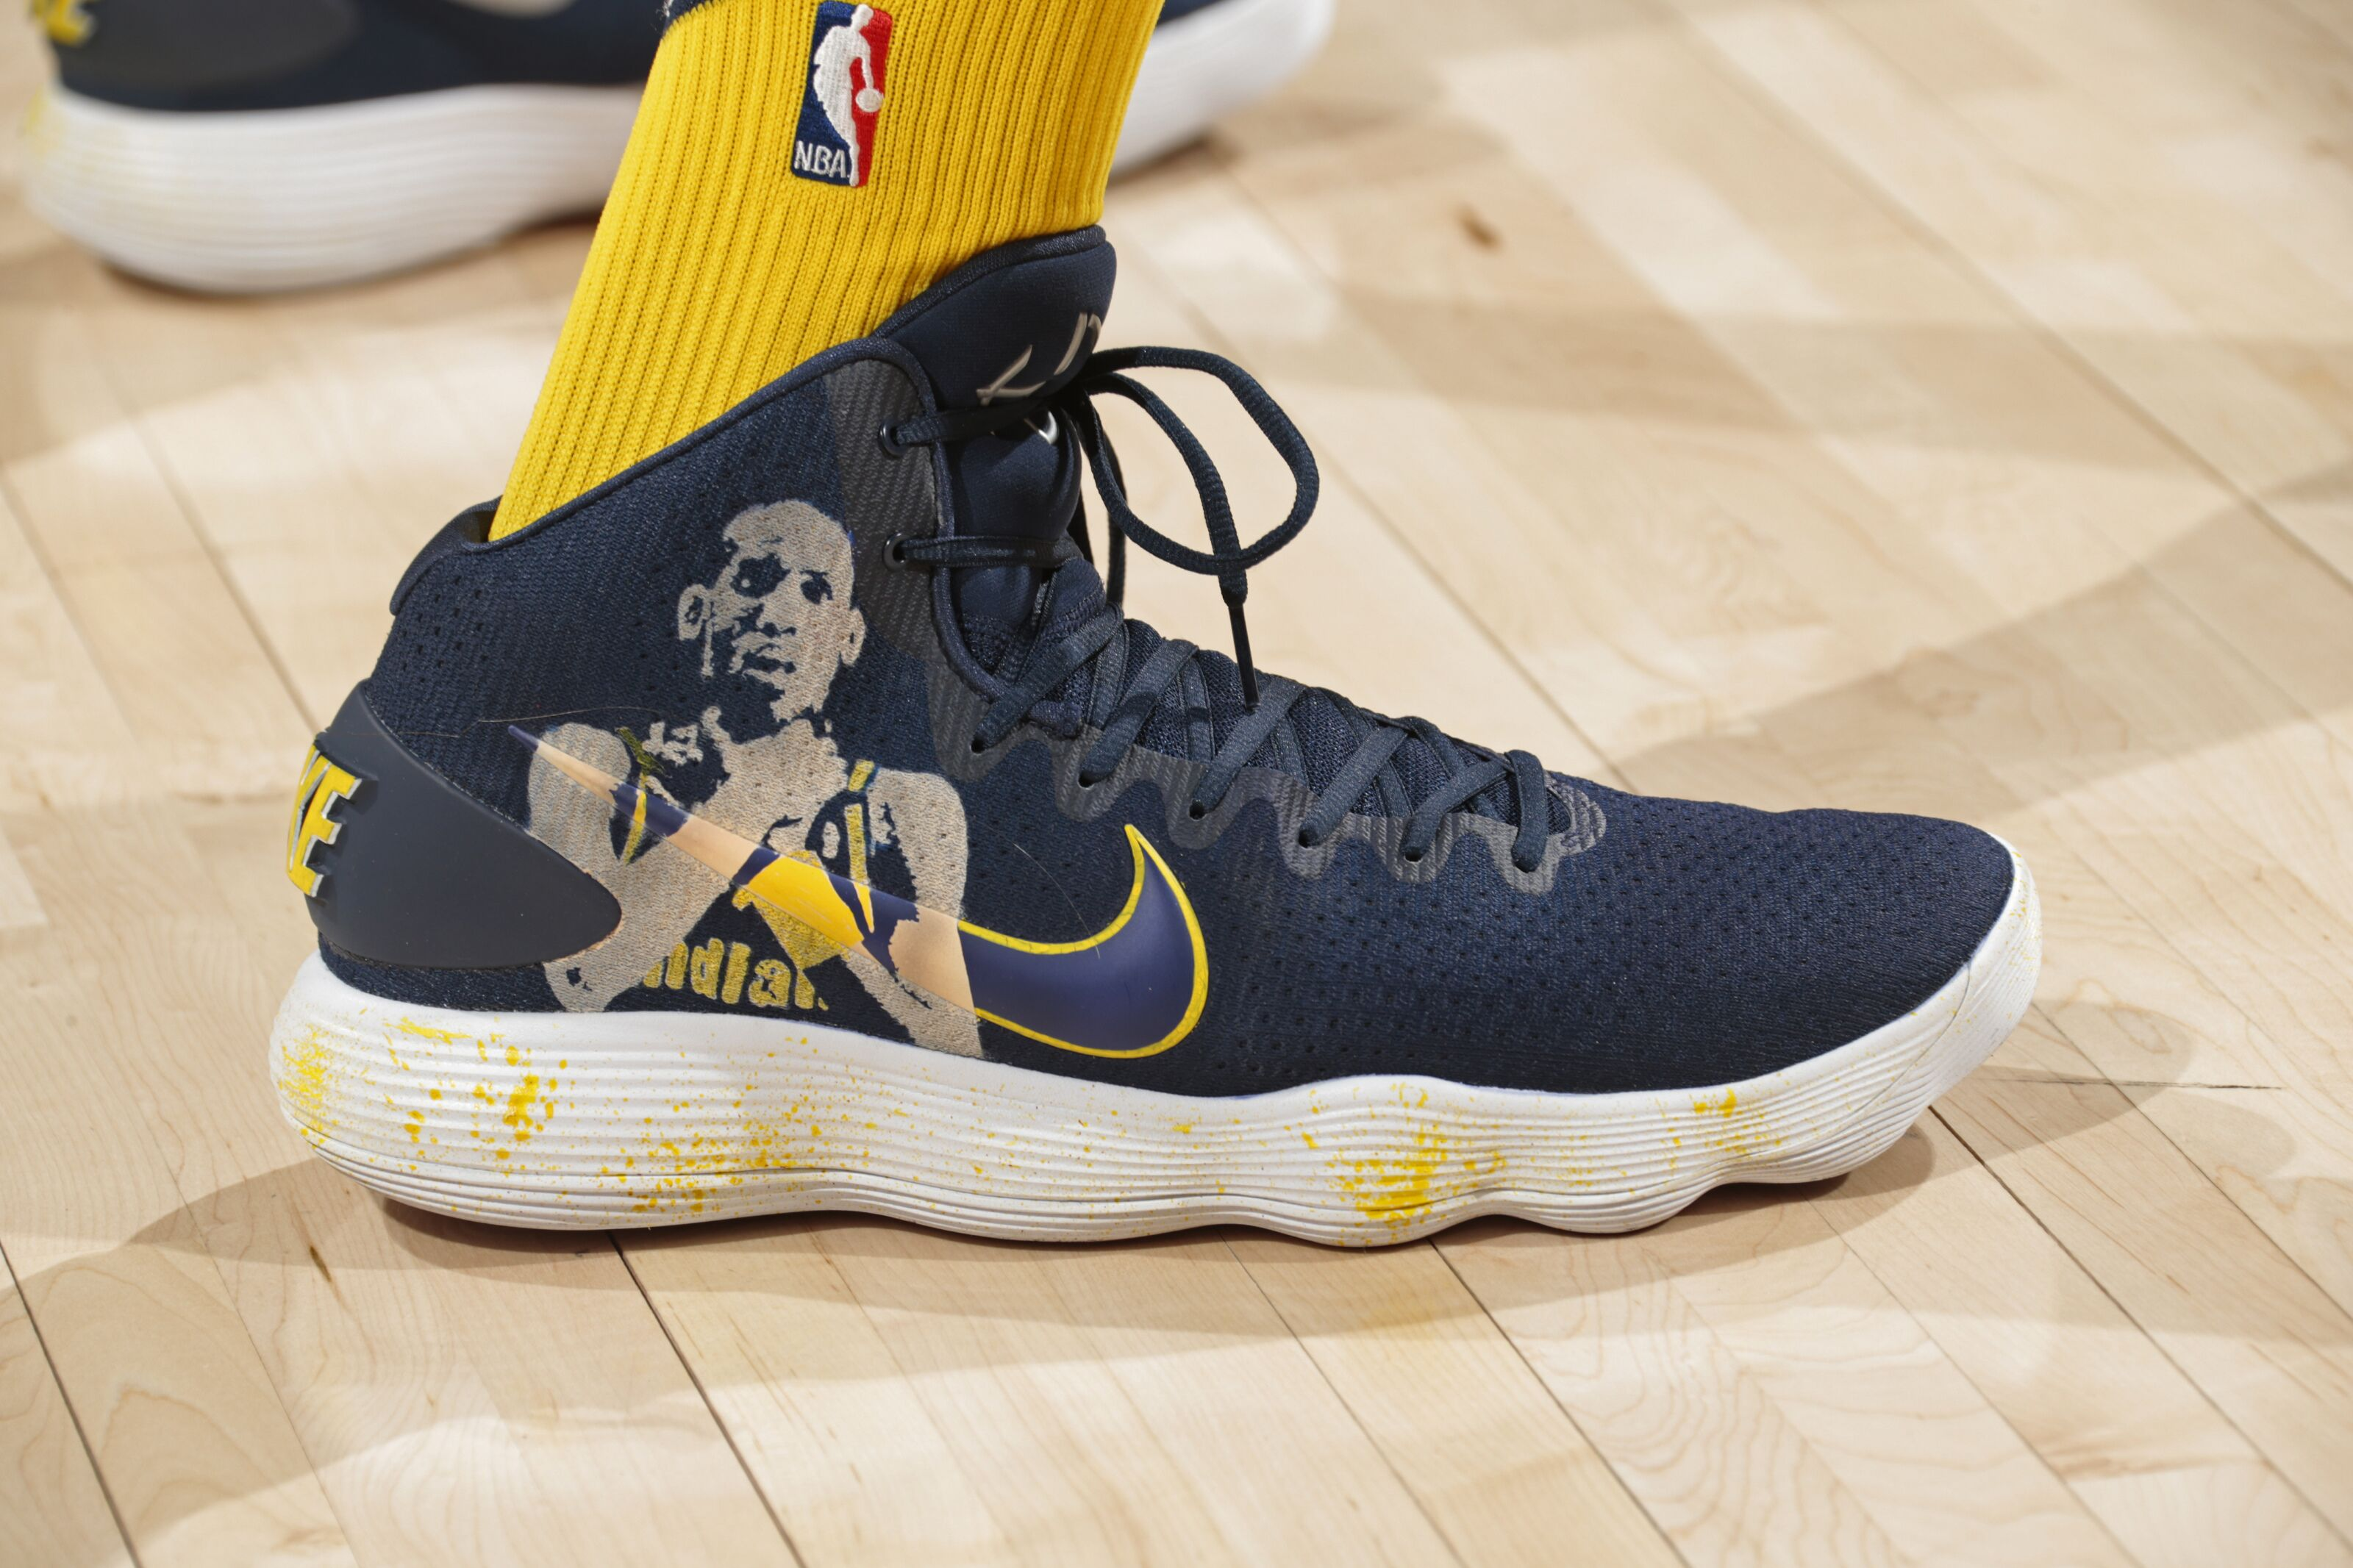 776f38c27490a4 Ranking the Top 5 Shoe Styles on the Indiana Pacers